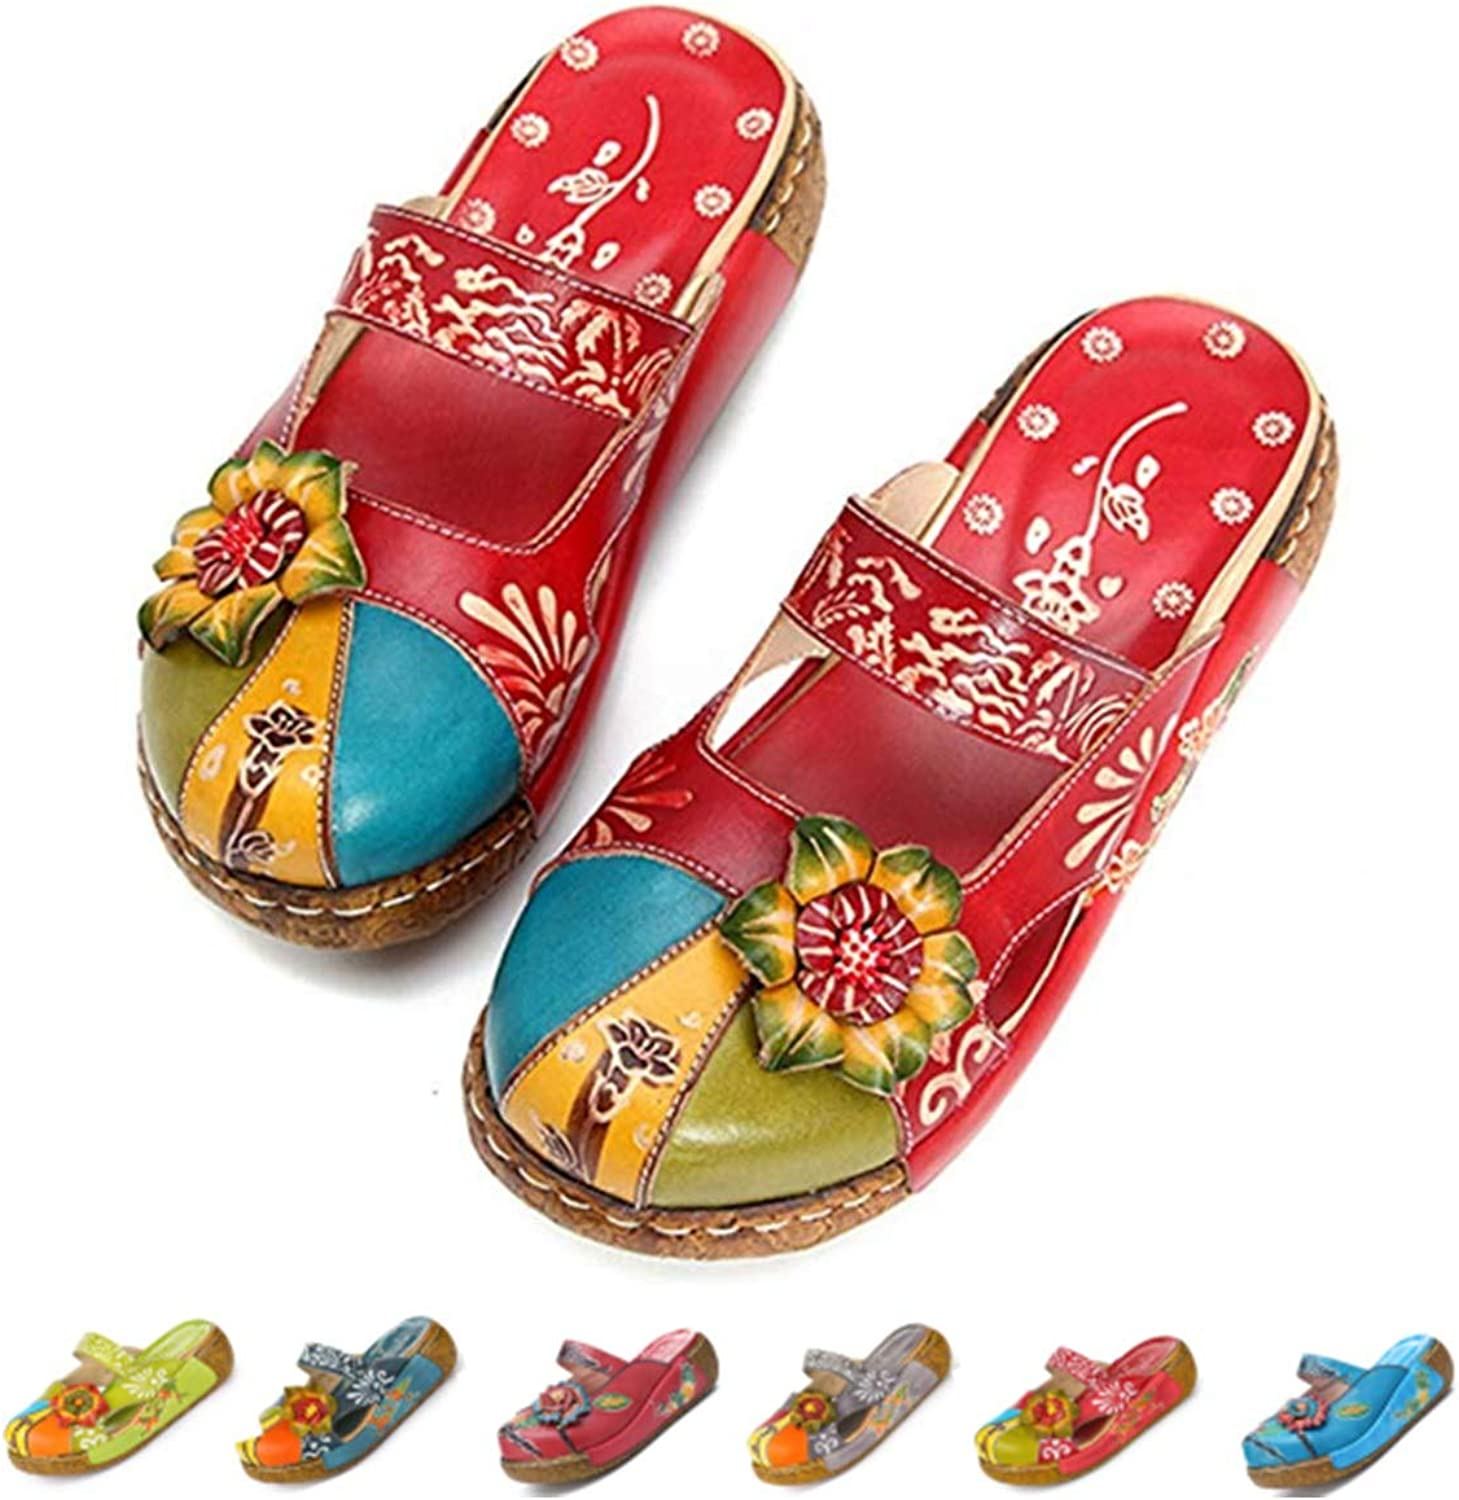 Gracosy Leather Mules for Women, Ladies Summer Slip On Closed Toe Loafer Flat Sandals Vintage Handmade Flower Oxford Holiday Beach Walking Slipper shoes